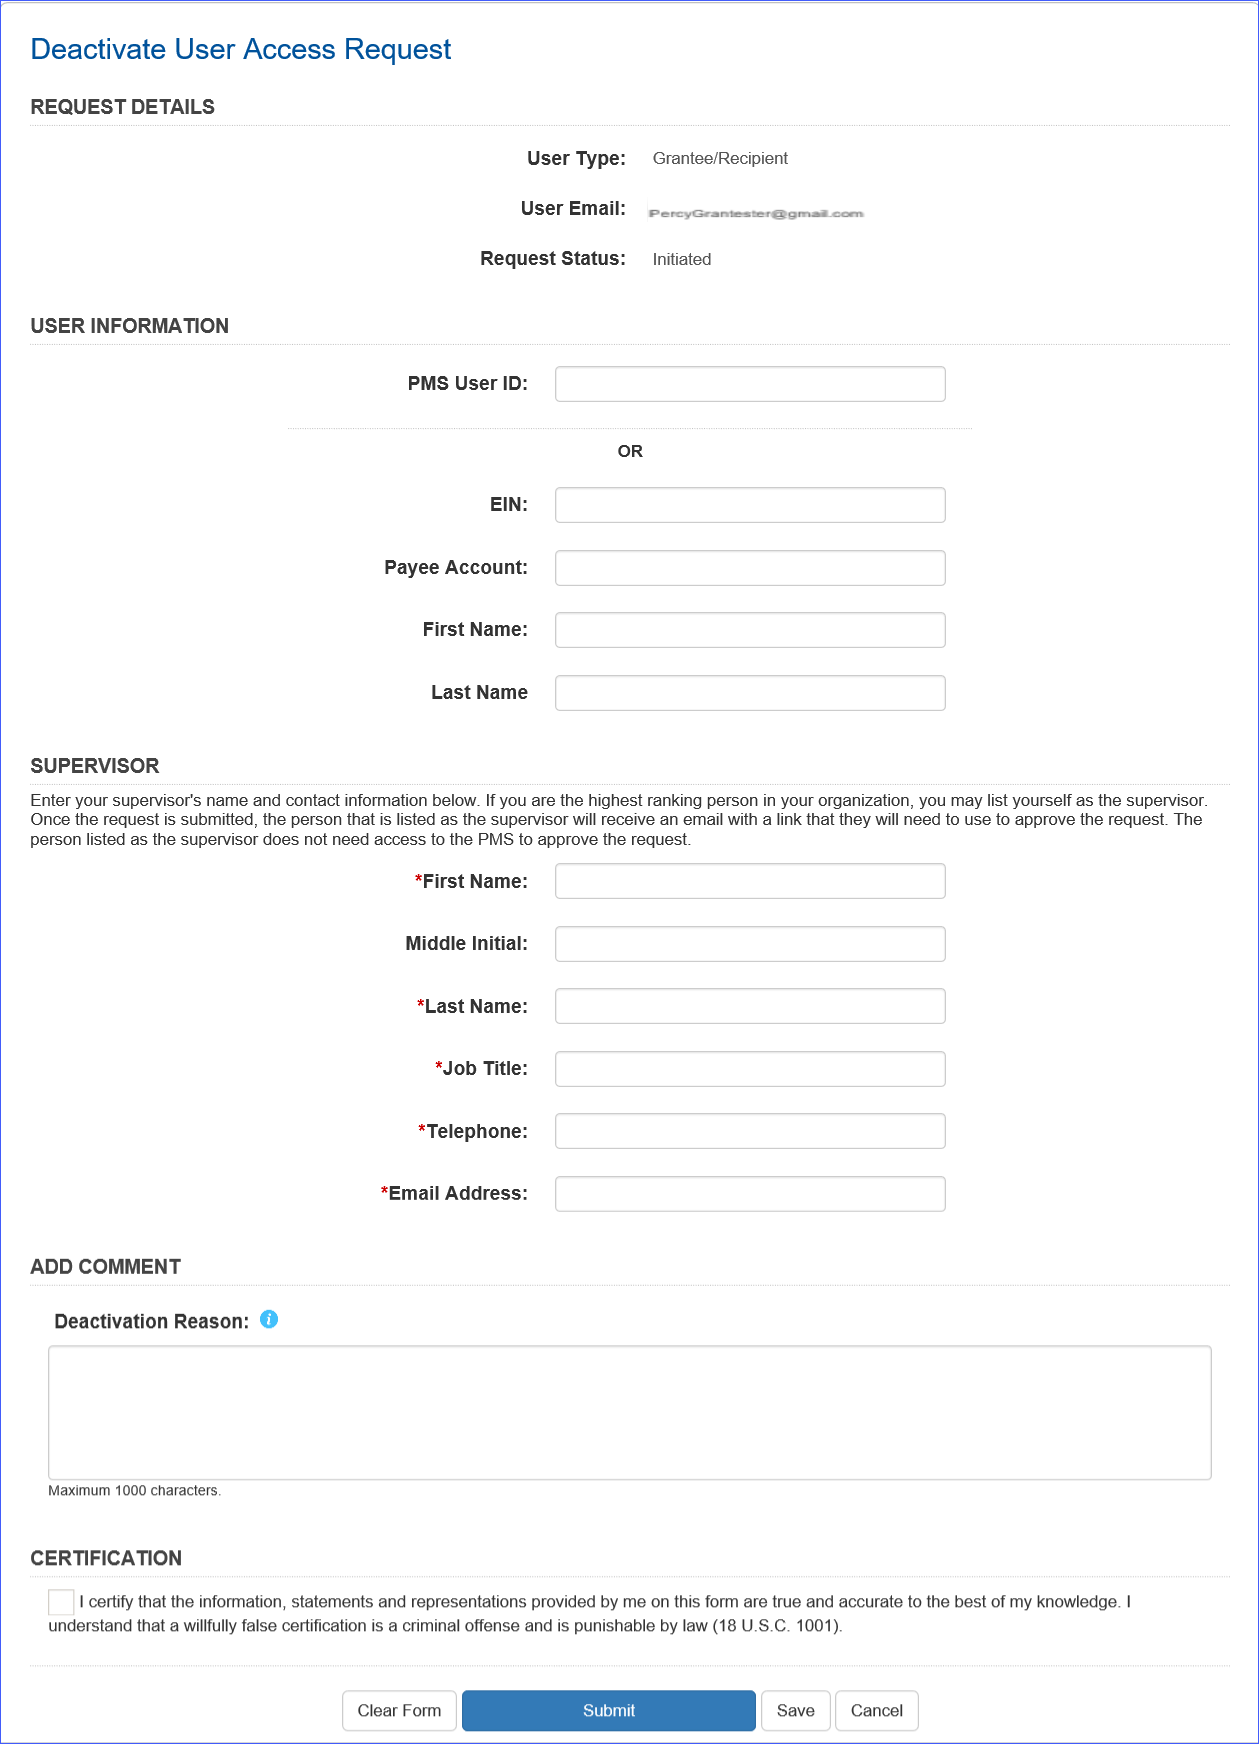 Screen shot of the deactivation request form.